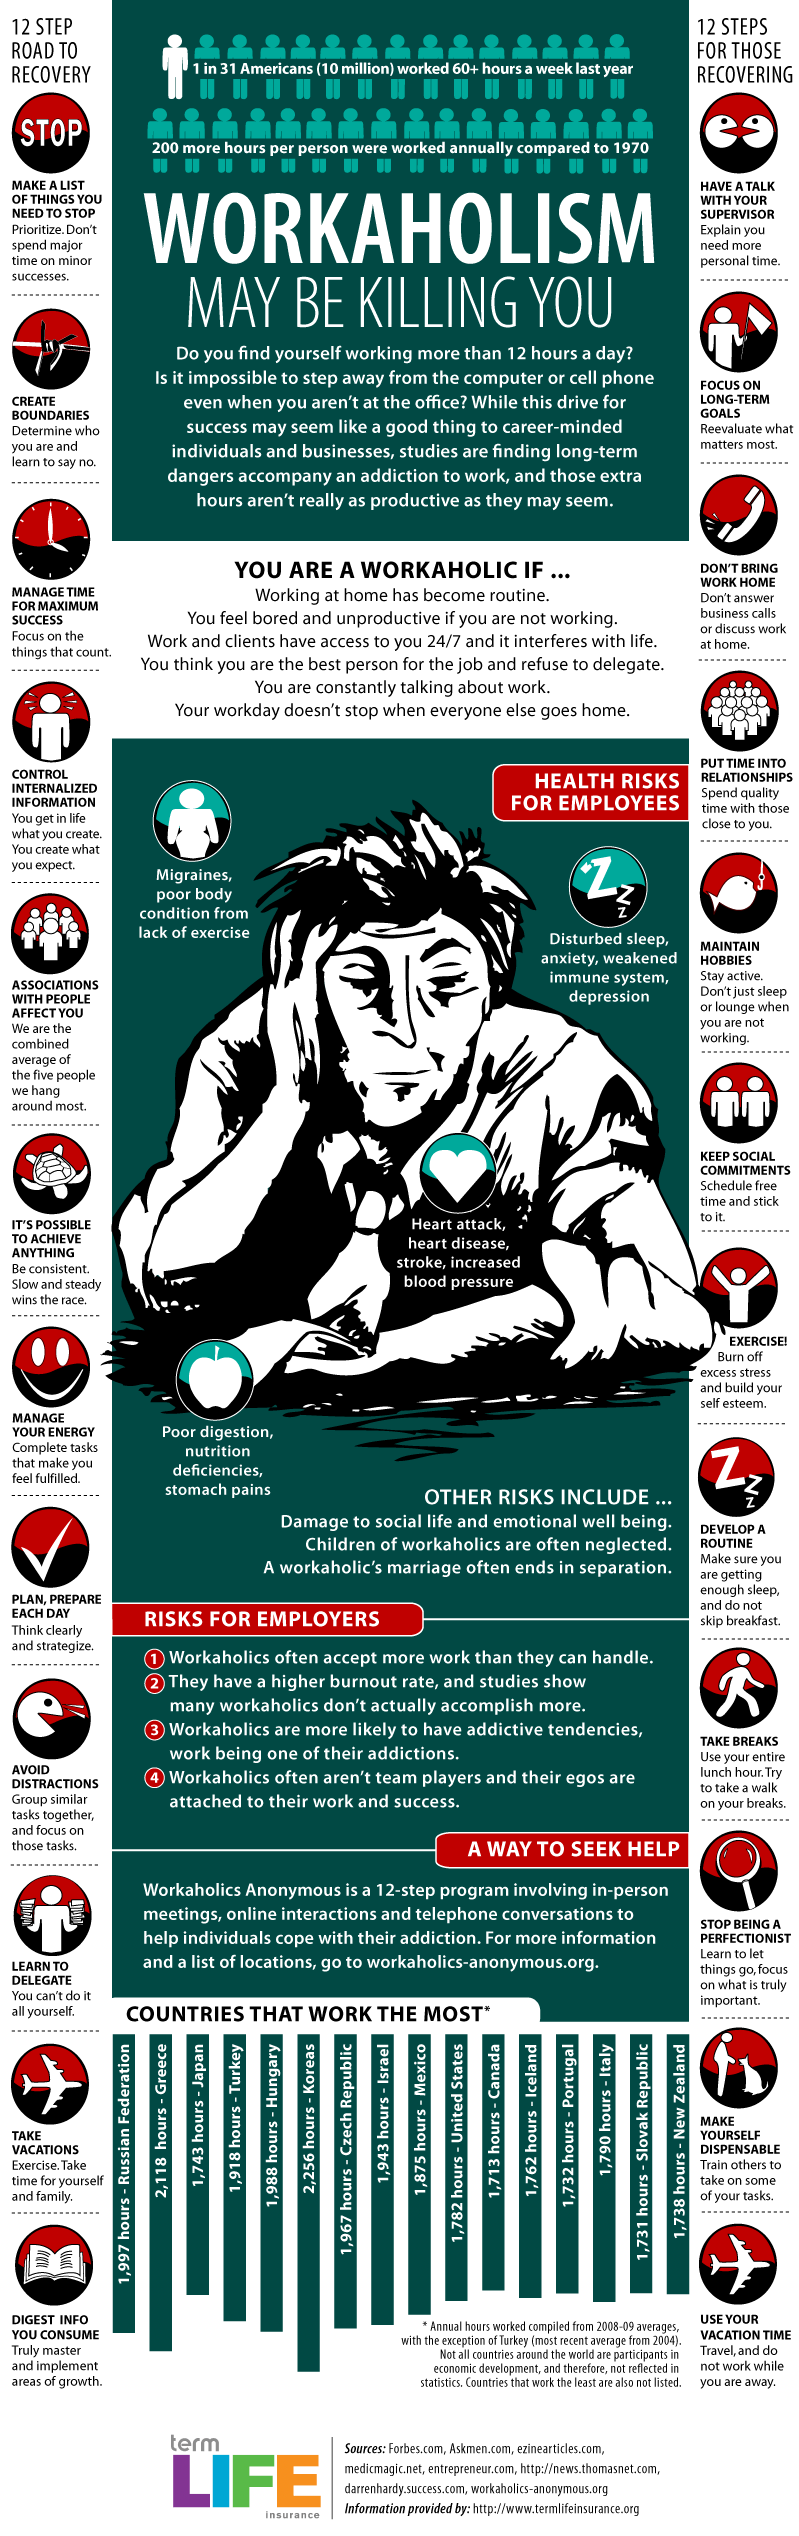 Workaholism: The Effects & A Guide To Recovery [Infographic]